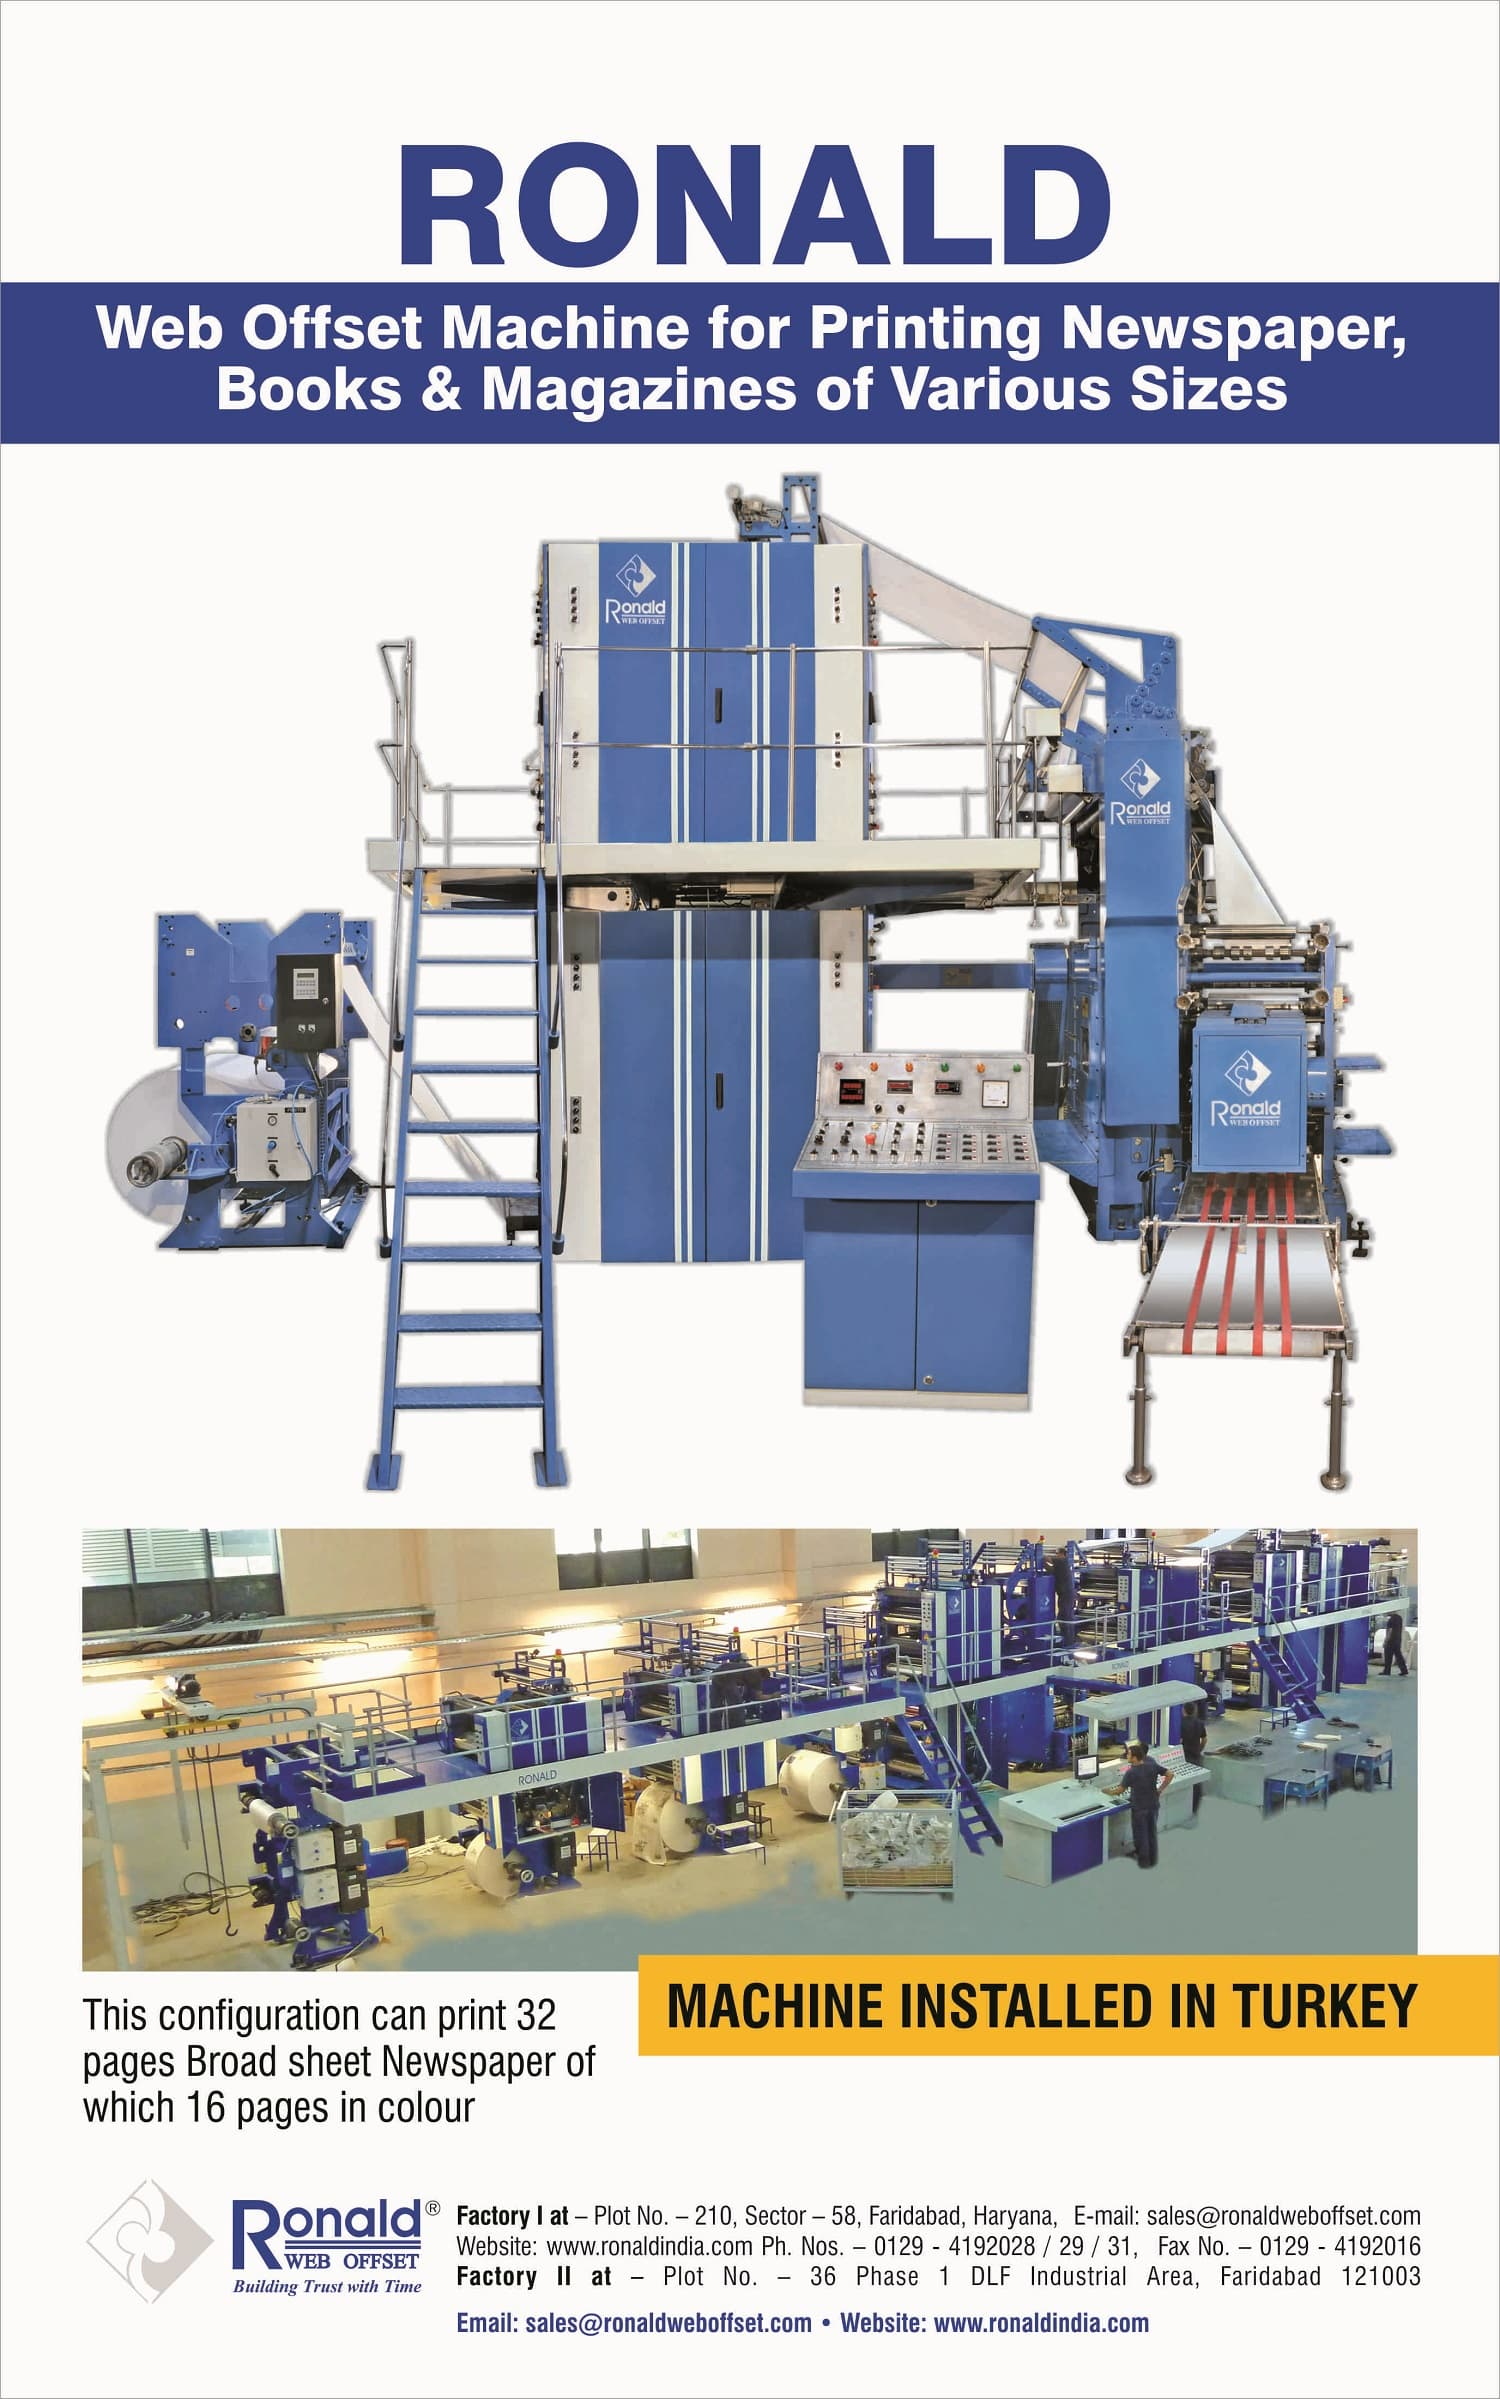 Web Offset And Sheetfed Printechno Solutions Press Diagram Gravure Printing For Newspaper Books Magazines With Speed Of 20000 30000 36000 45000